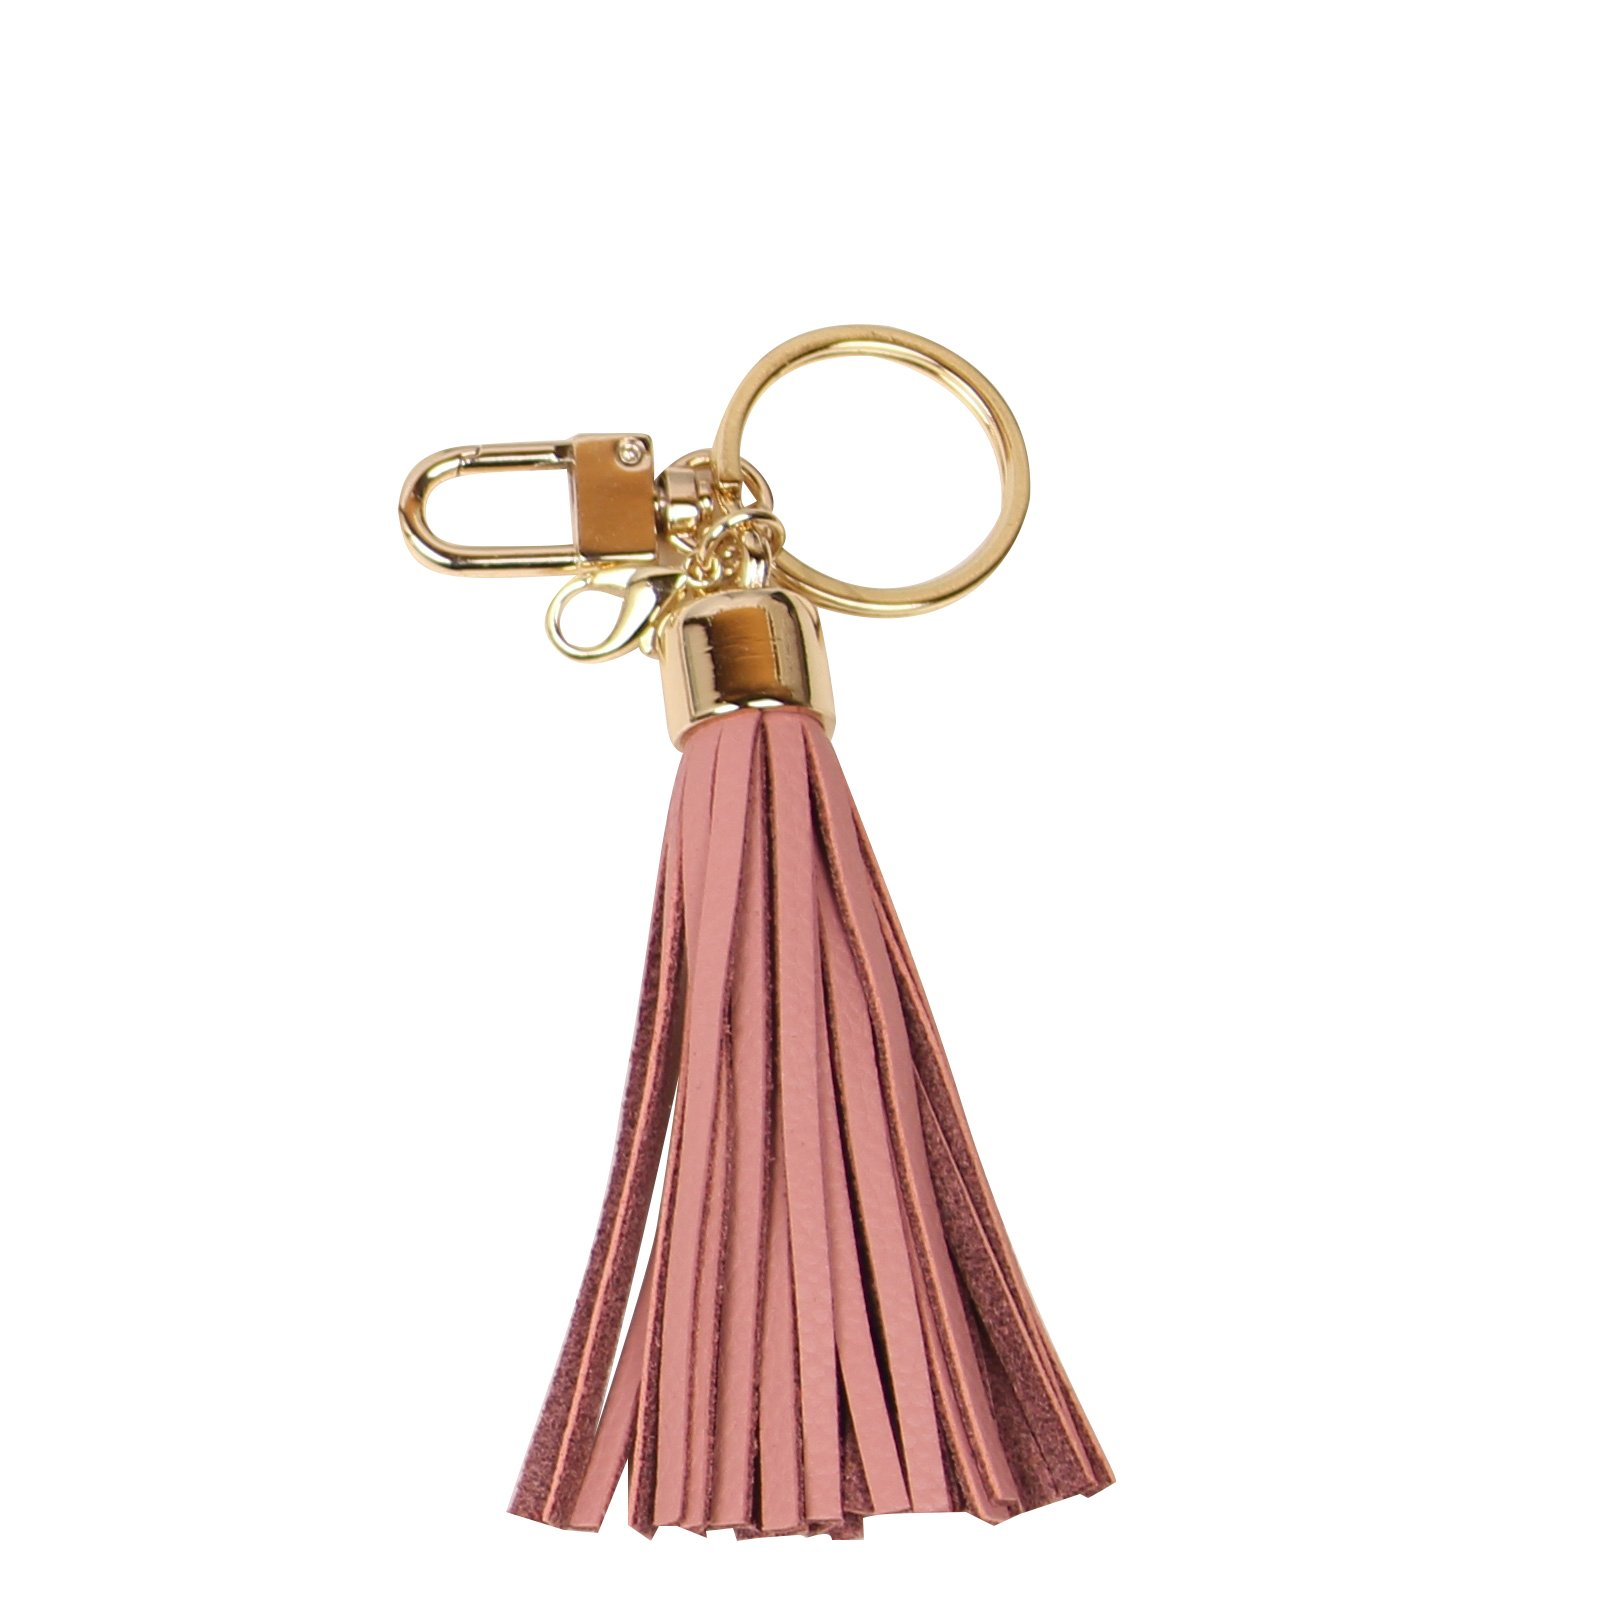 Leather Tassel Charm Women Handbag Wallet Accessories Key Rings (Indi-pink) by Beautyou